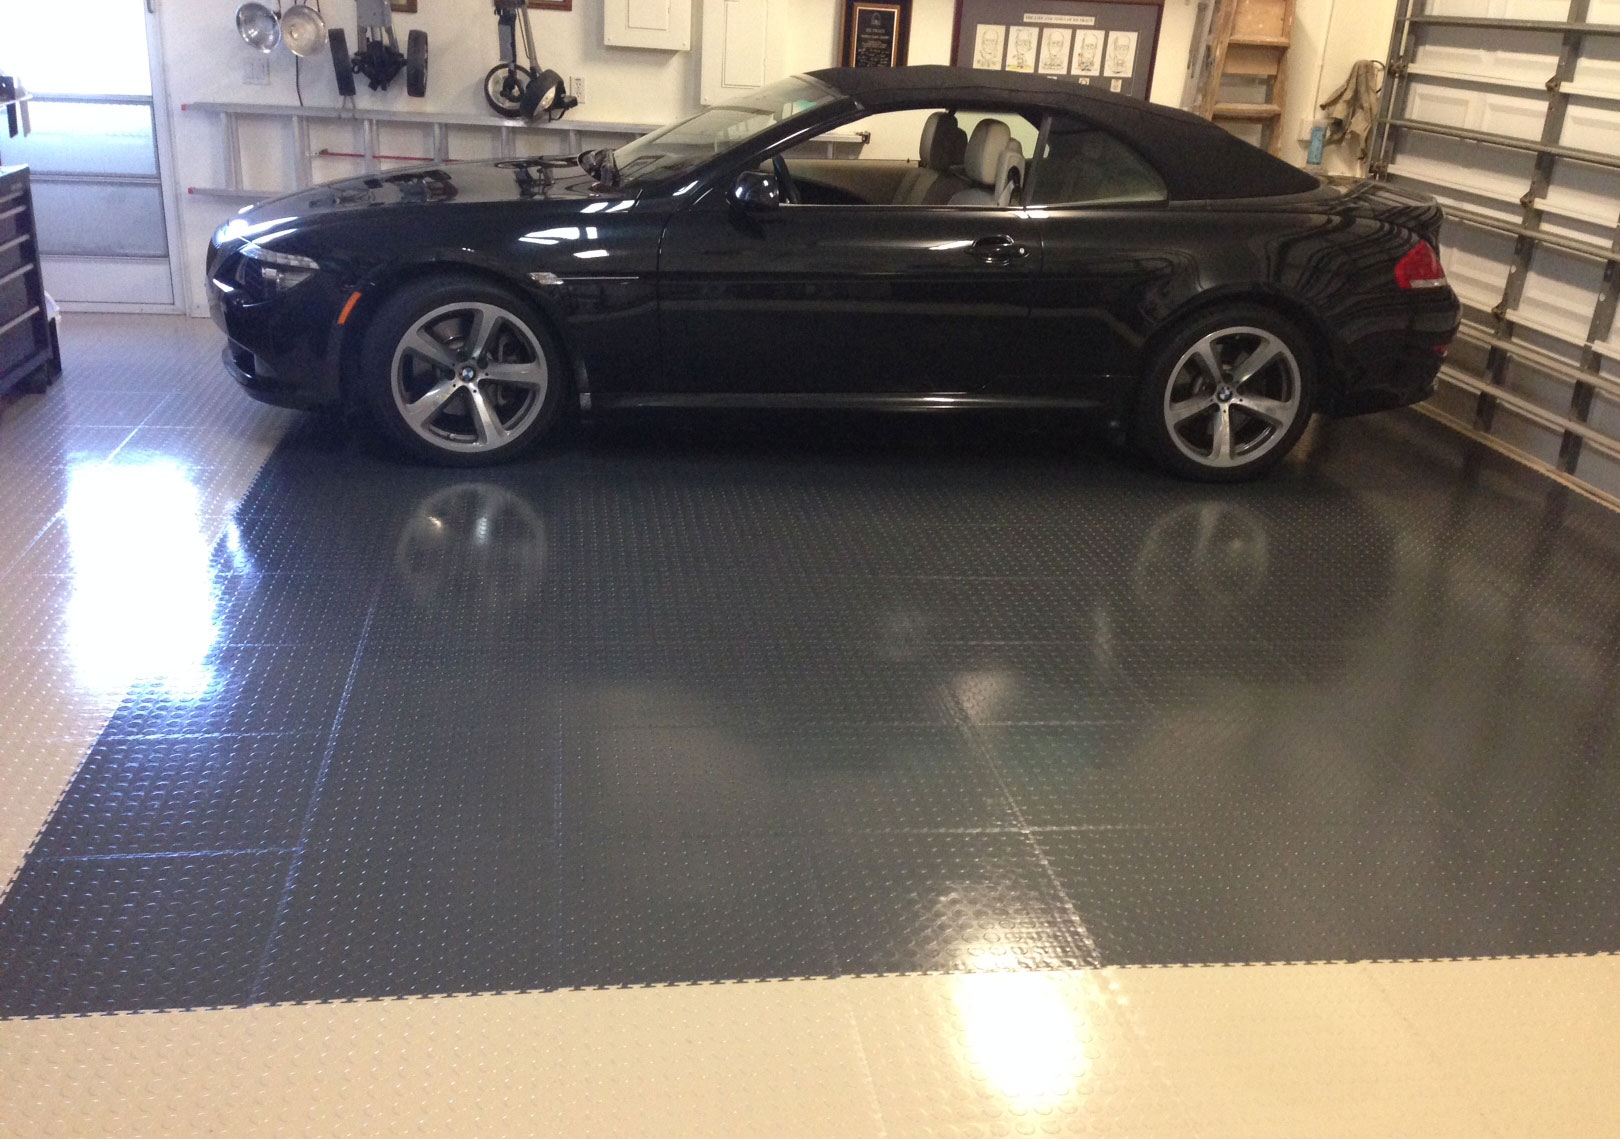 Garage Floor Epoxy Options Truelock Pvc Garage Floor Tiles Industrial Strength